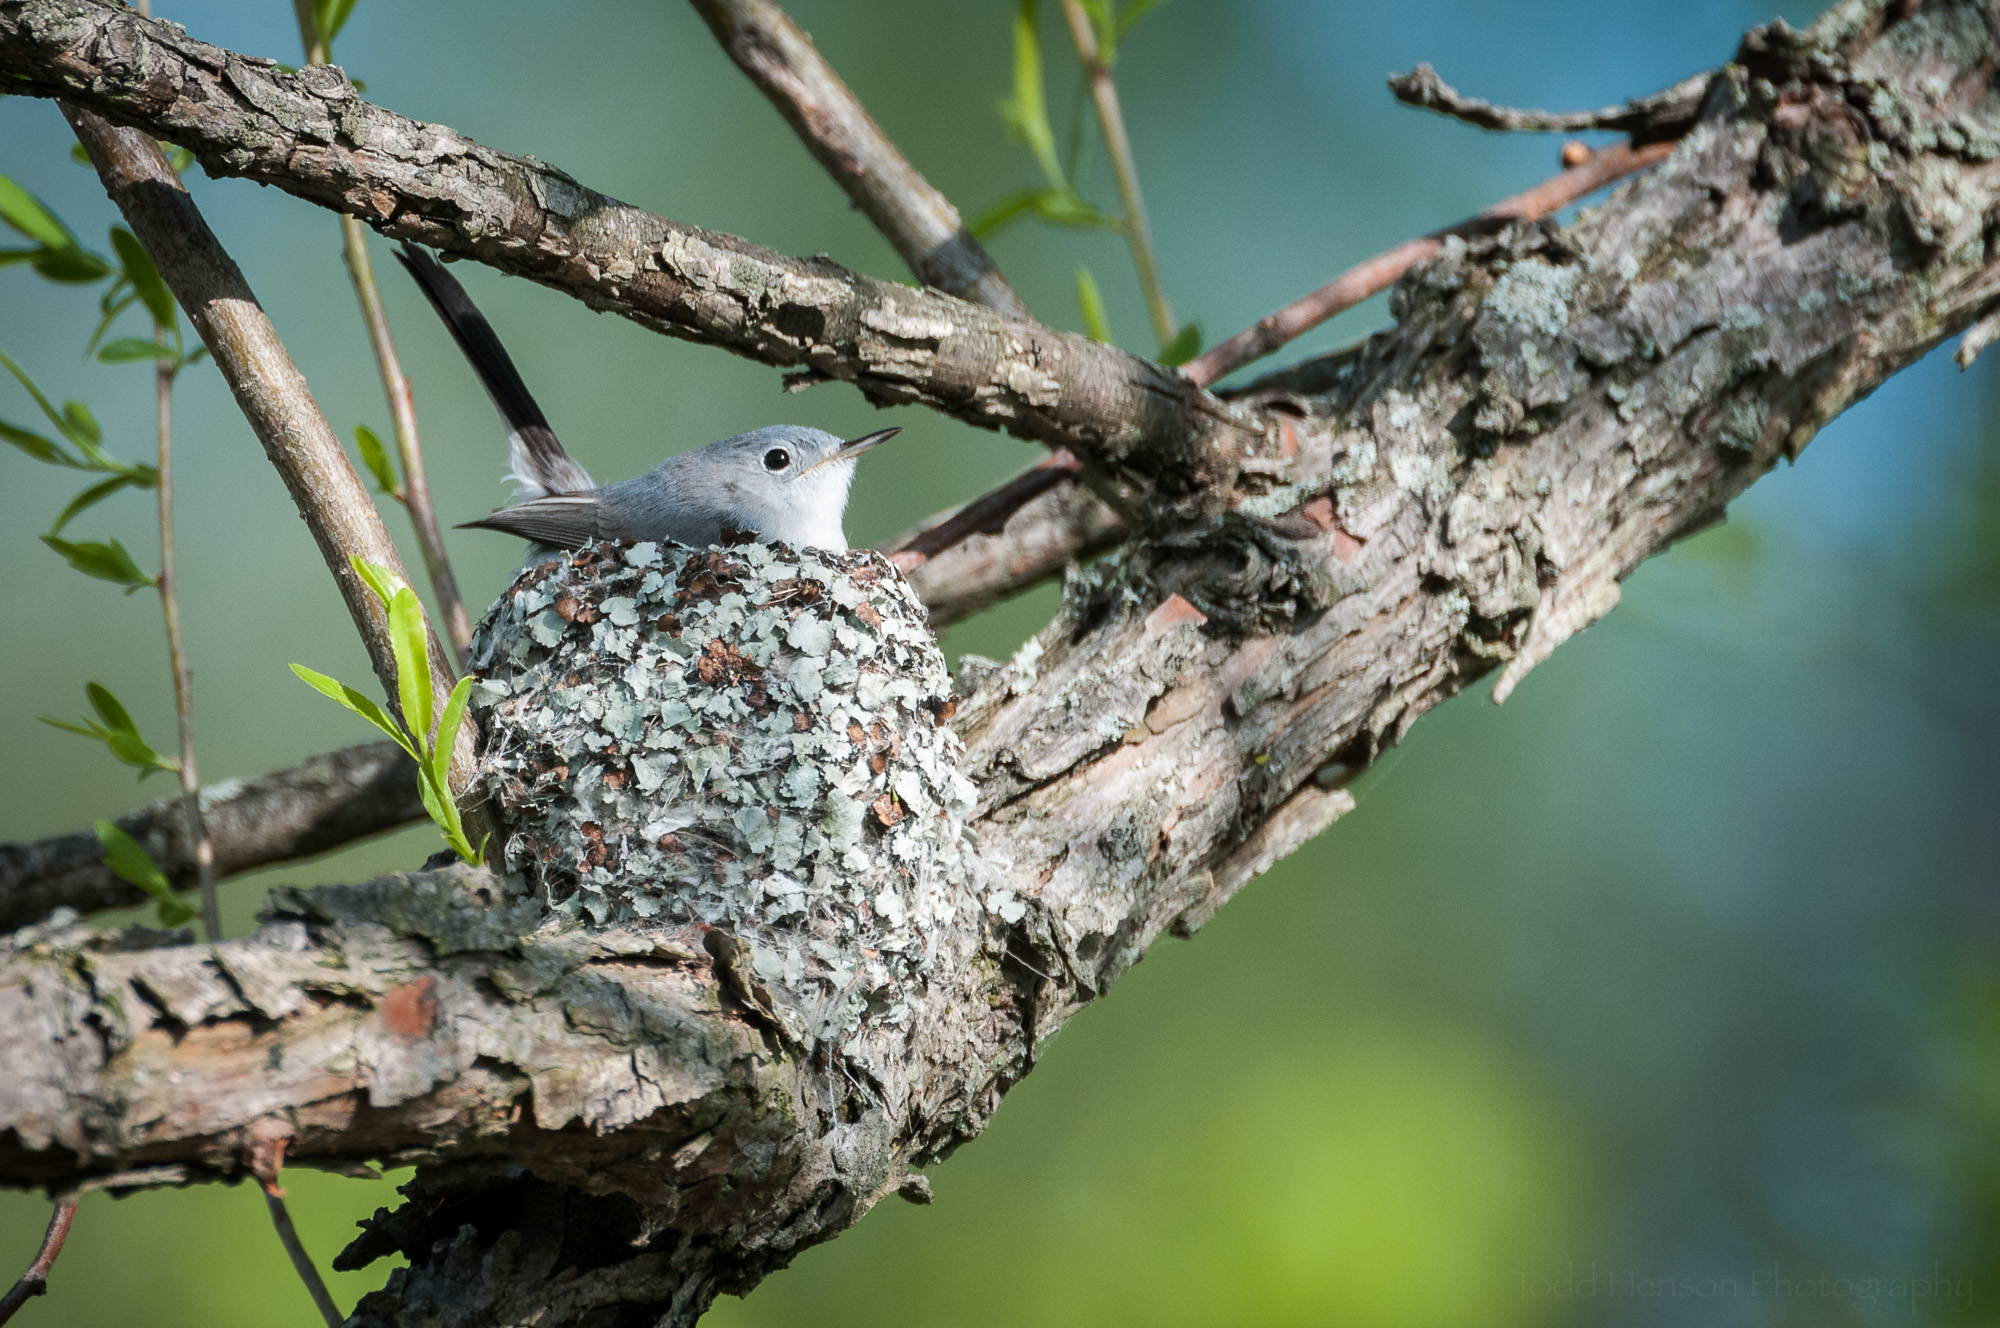 A Blue-gray Gnatcatcher I found sitting on its nest.